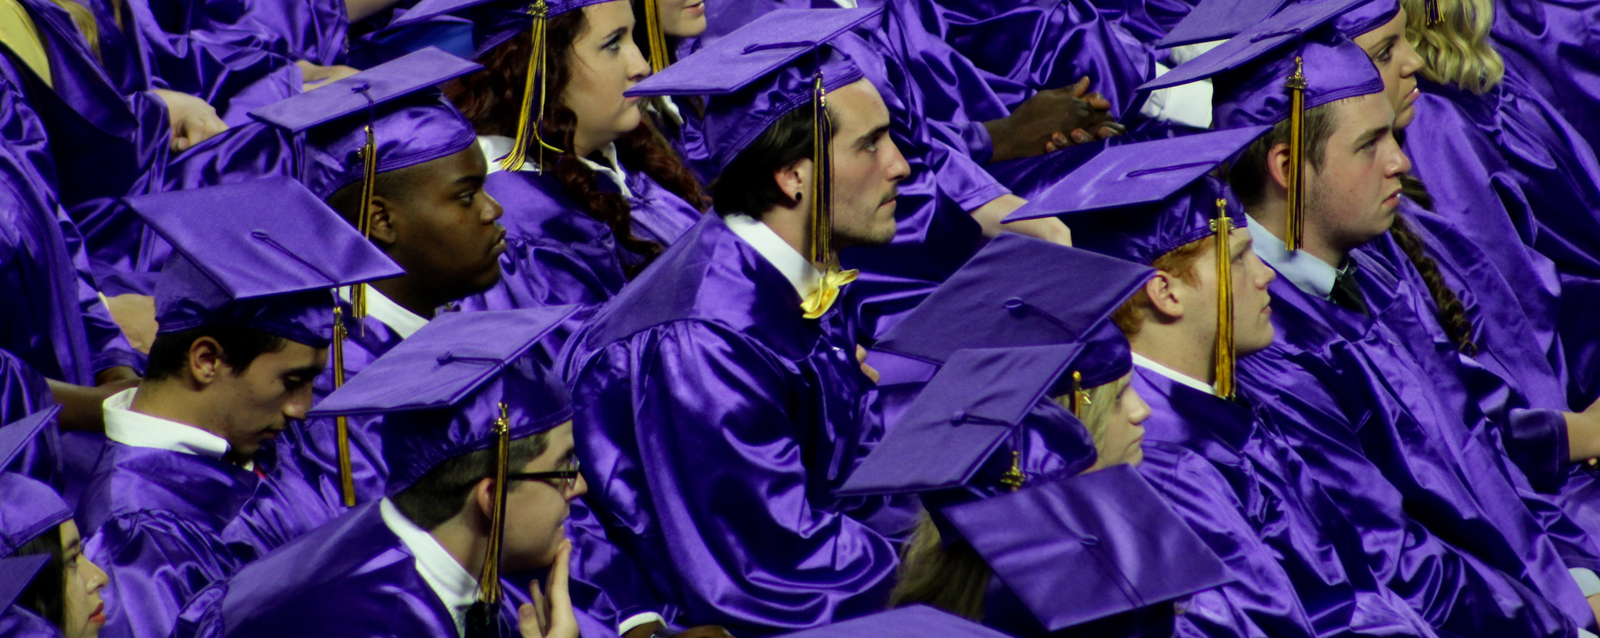 Purple graduation cap and gown group picture